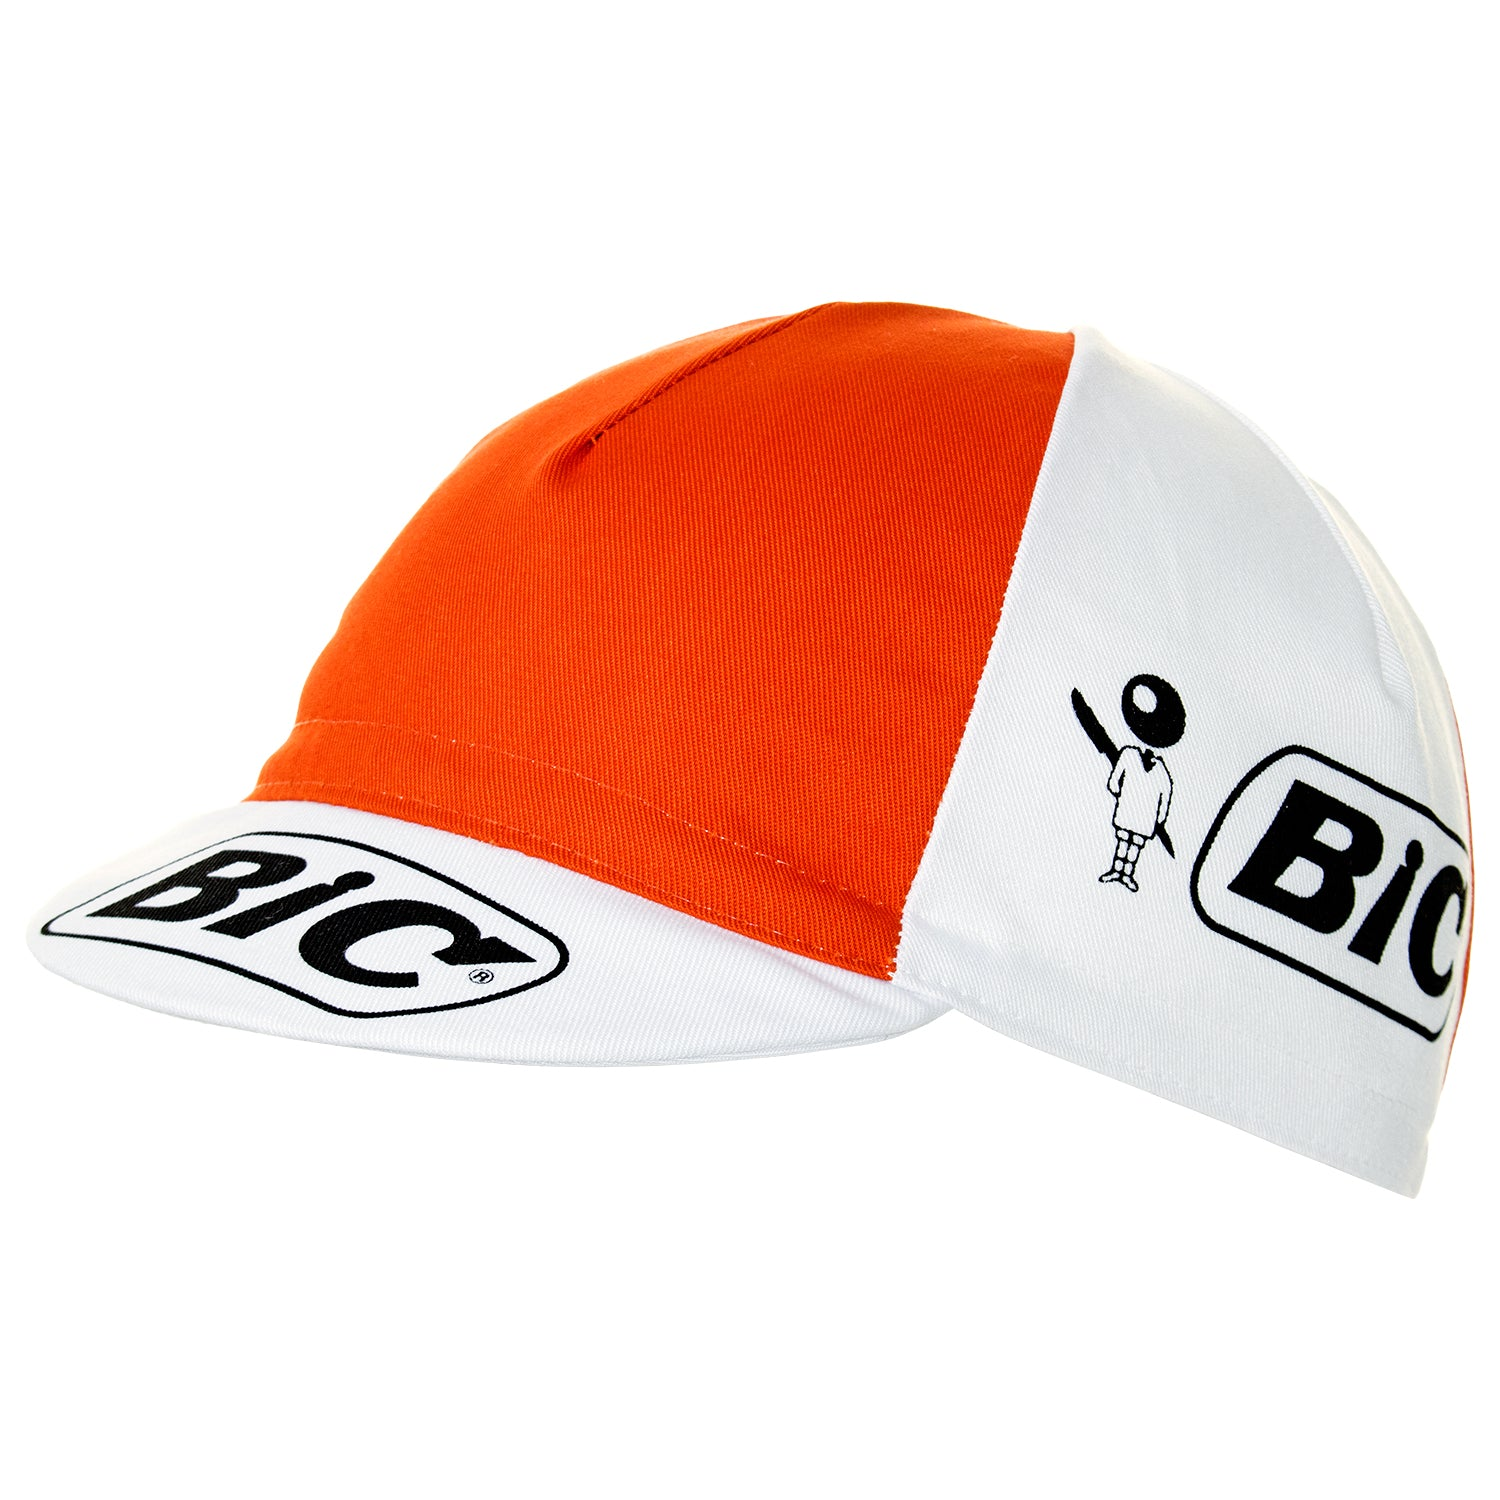 BiC Retro Retro Cycling Cap